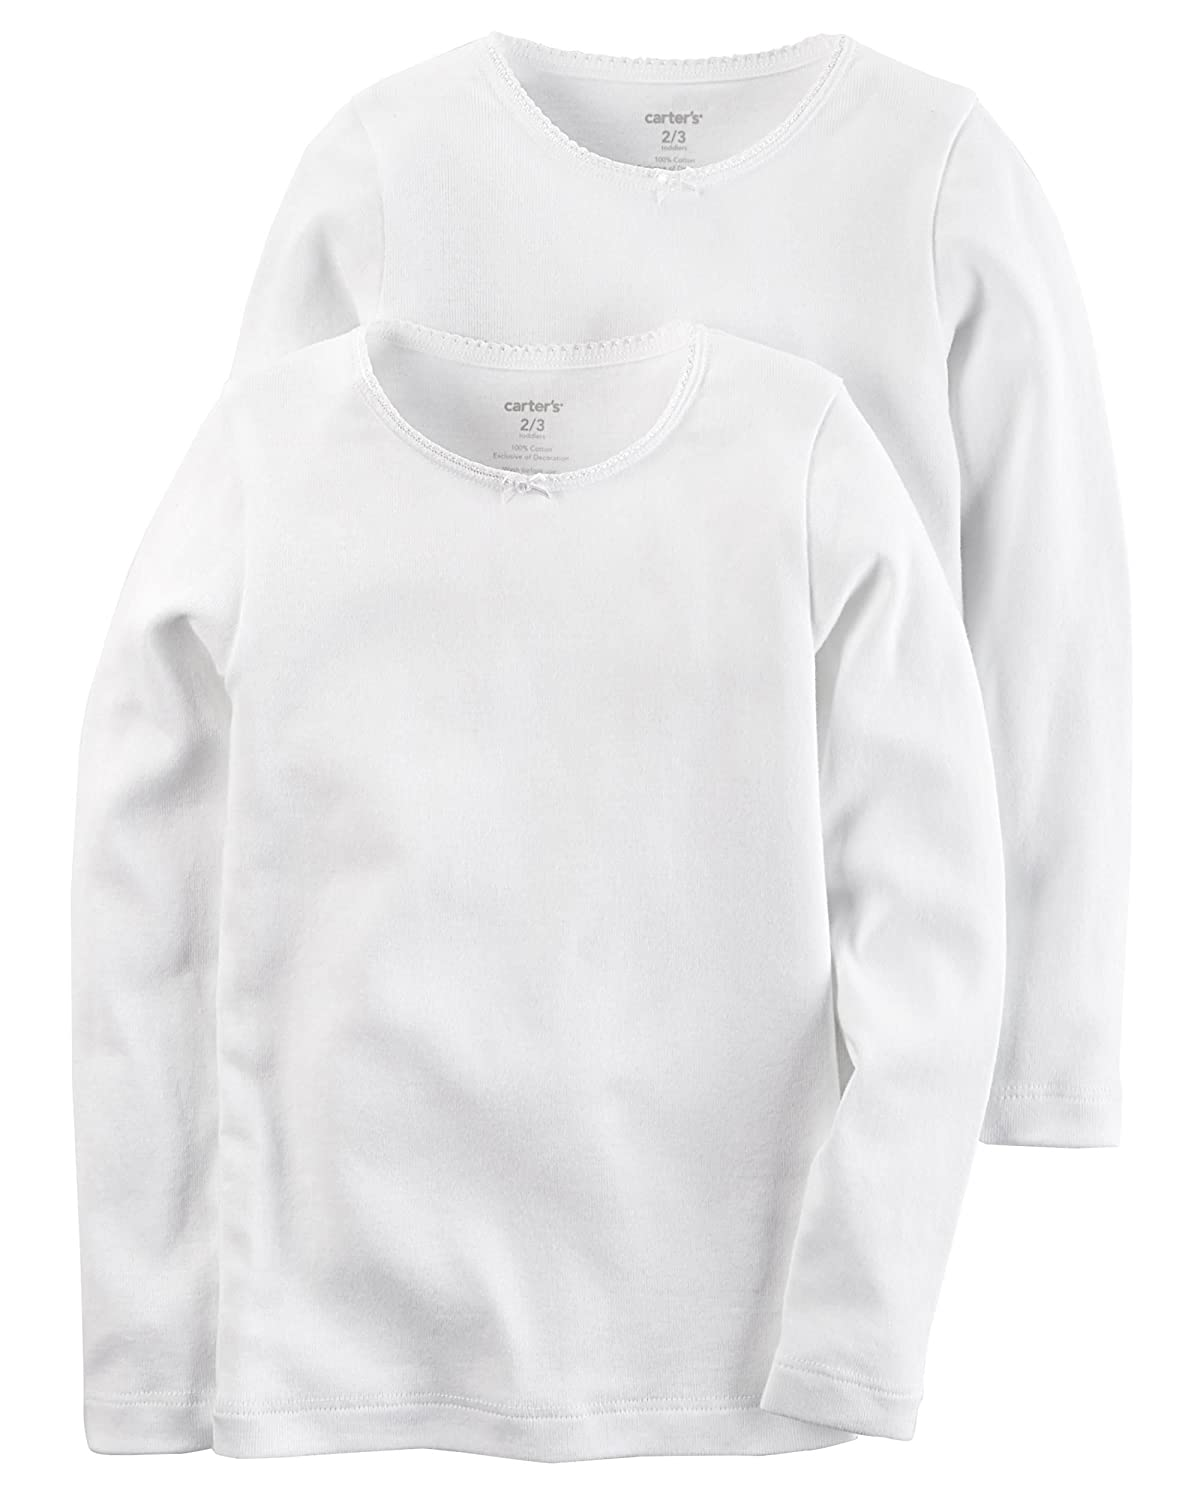 Carter's Little Girls' 2-pack White Cotton Tee Set Carter's